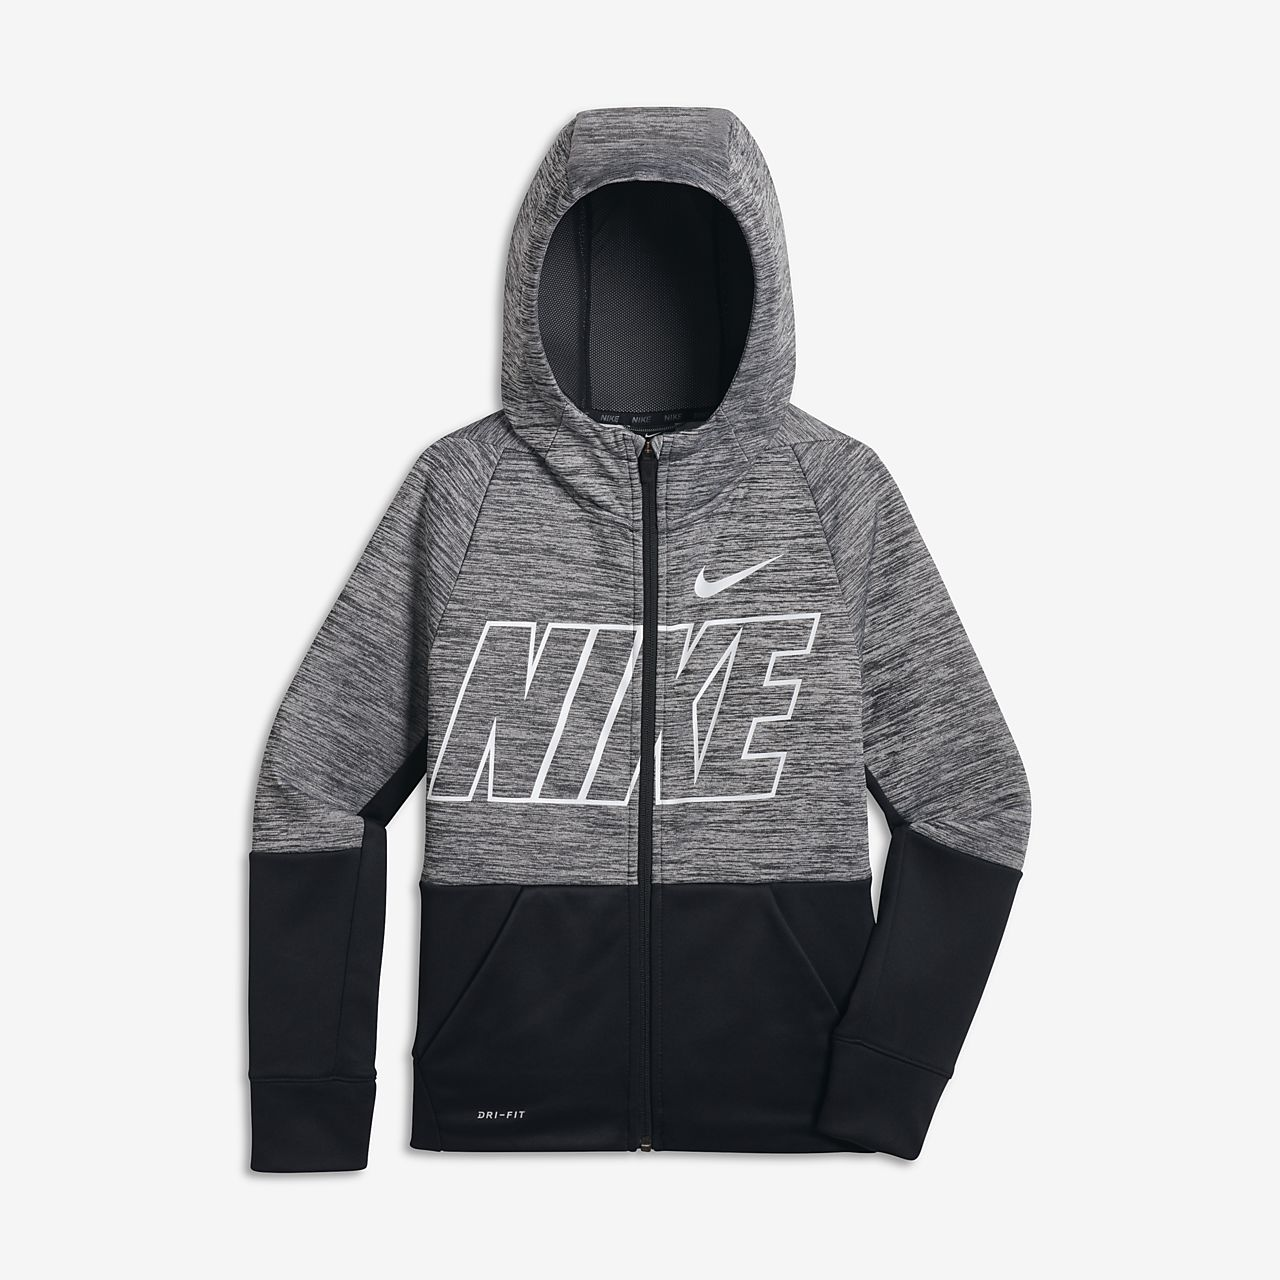 De À Capuche Fit Therma Dri Sweat Zippé Training Nike Entièrement TAEWxqwO